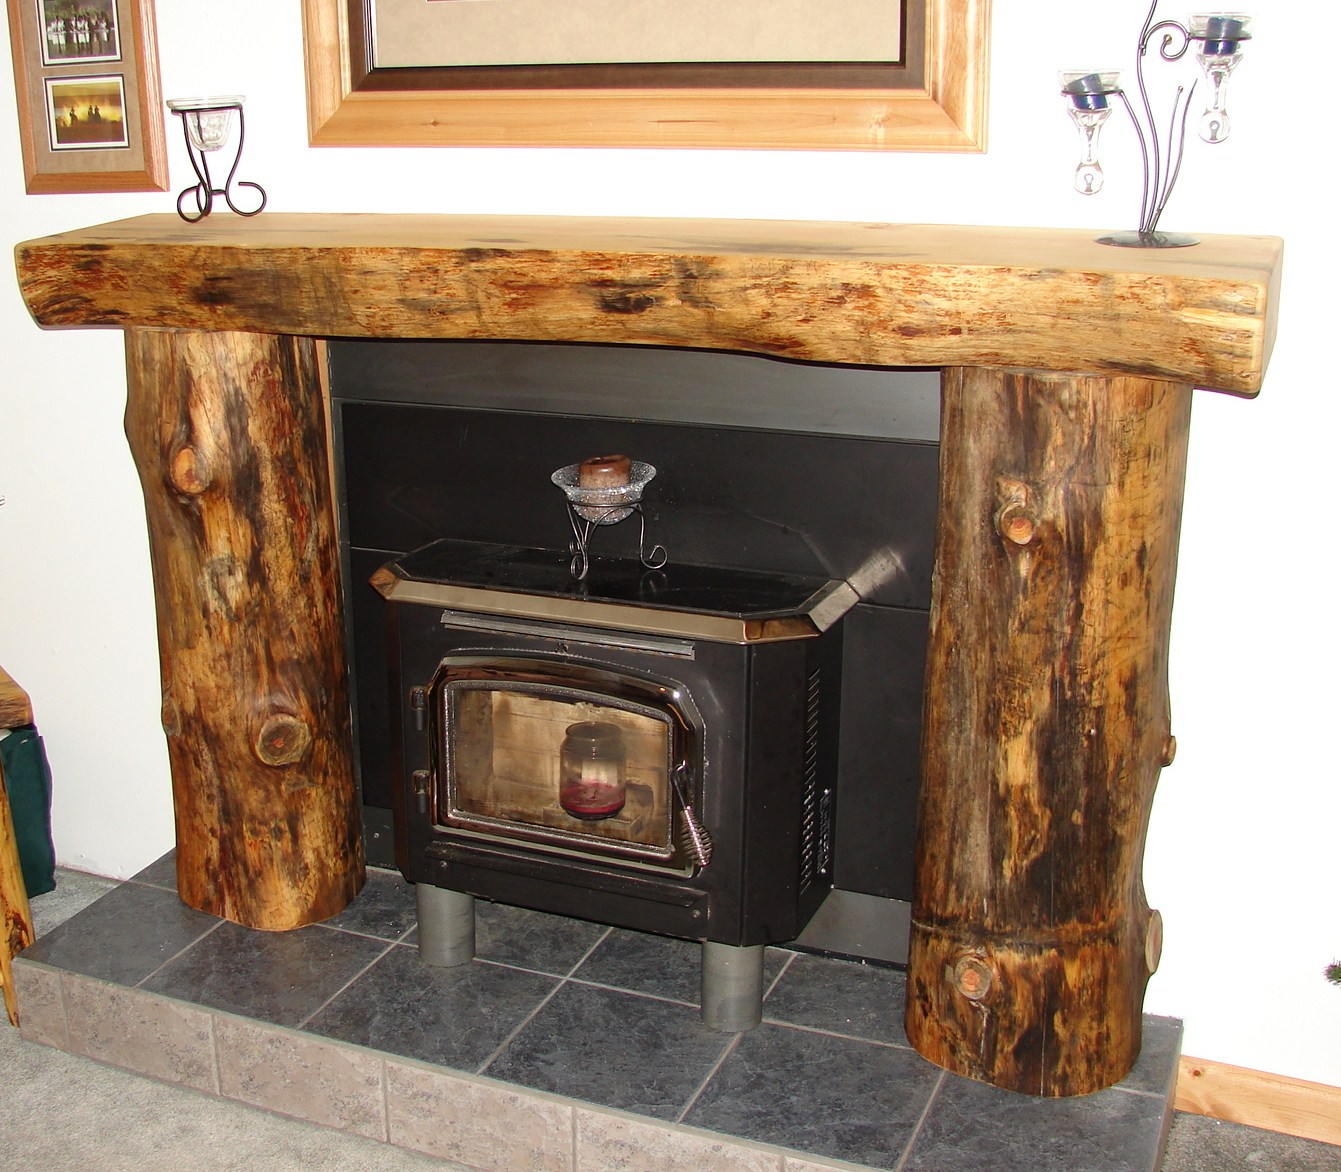 Log fireplace mantels - Mantelpieces fireplaces ...